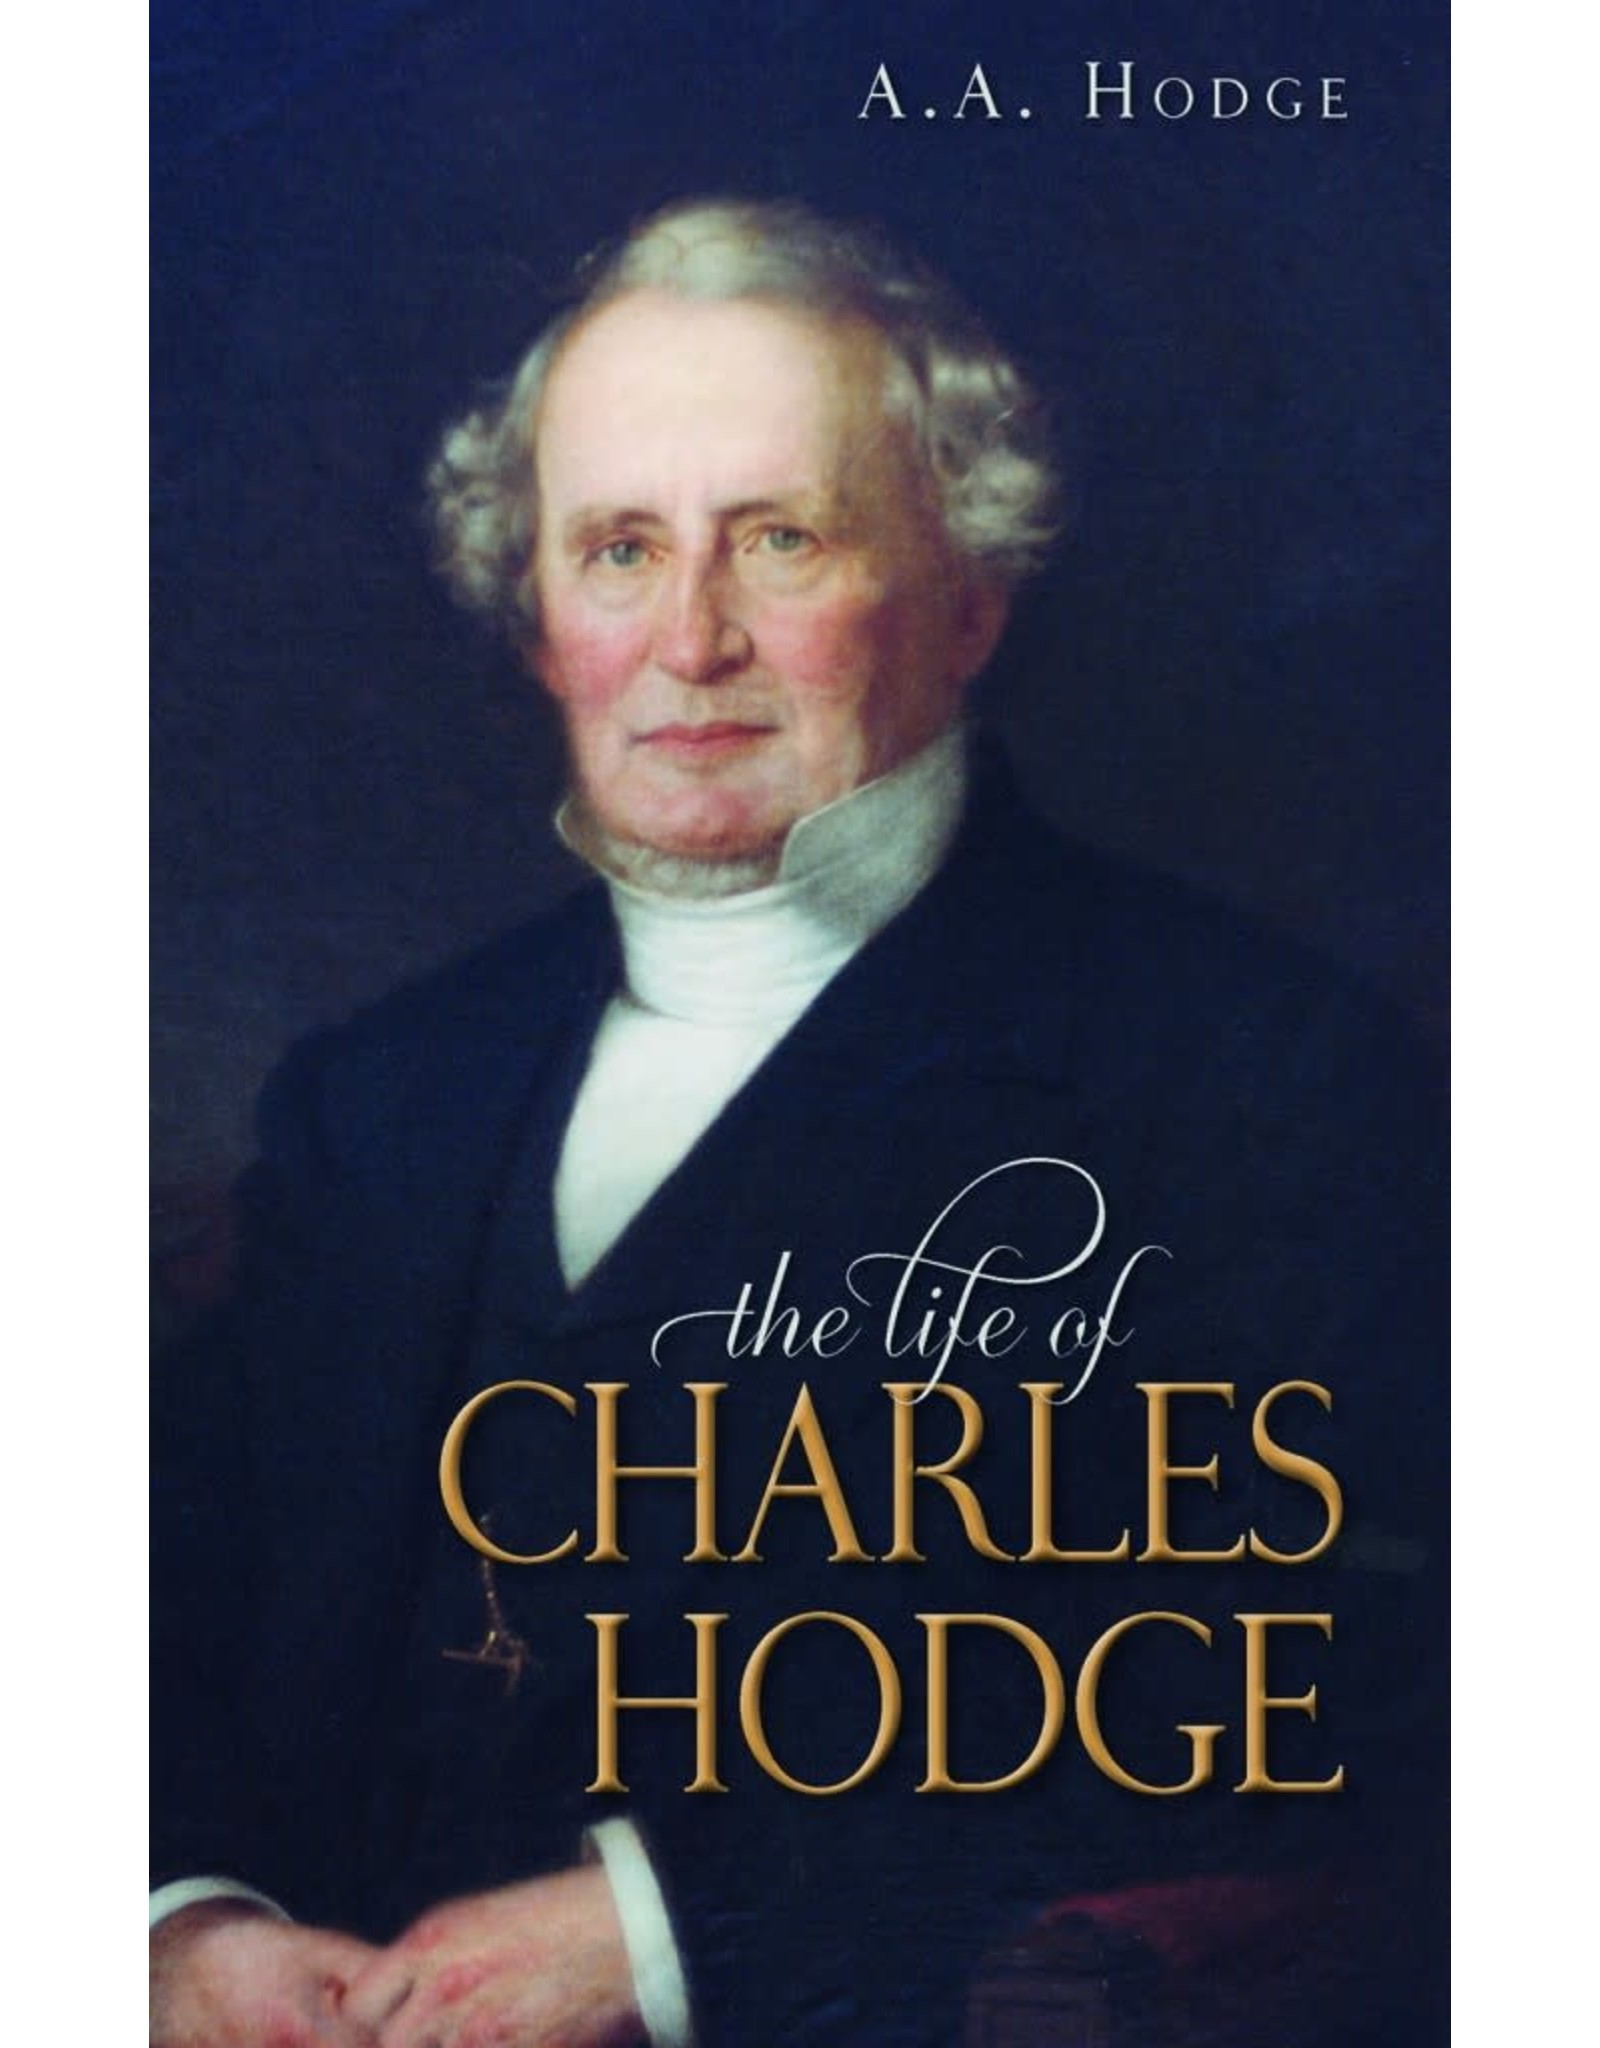 Hodge Life of Charles Hodge